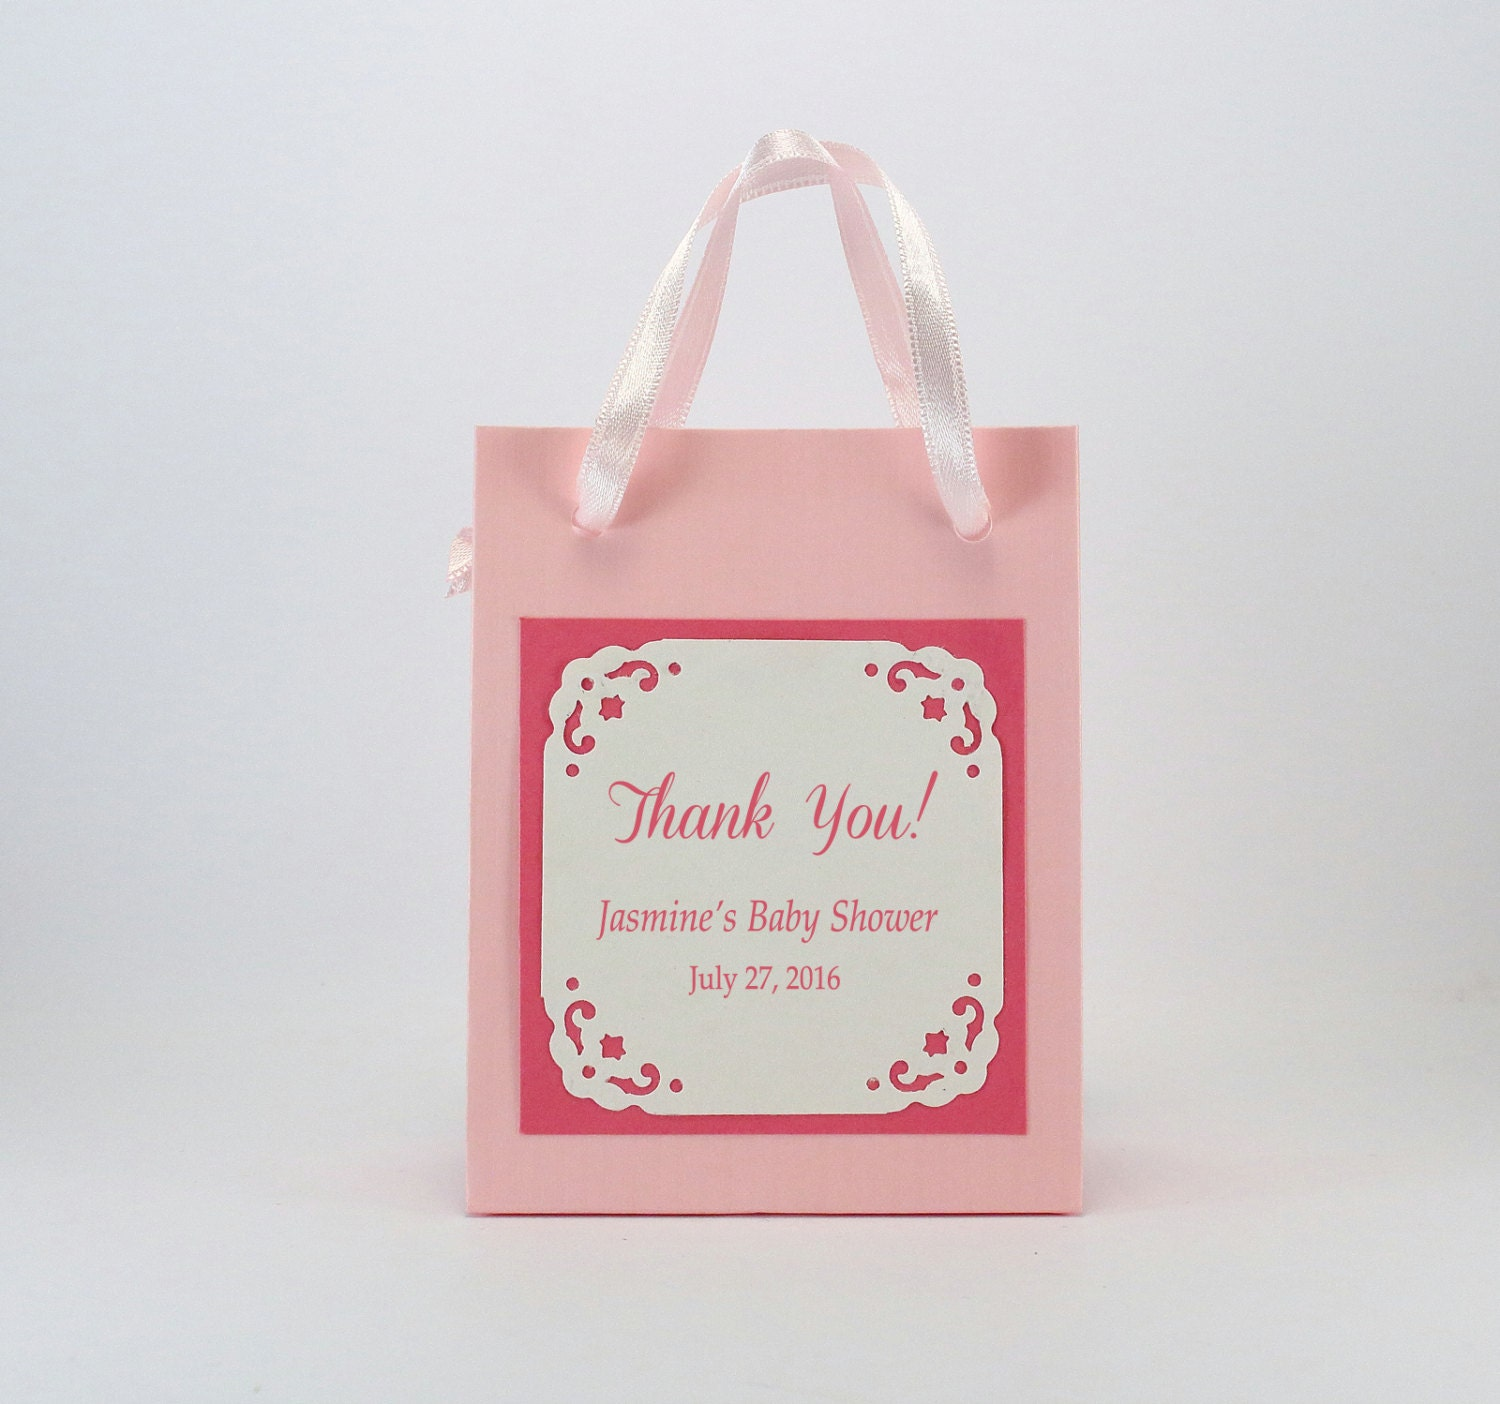 10 baby shower favor bags with a printed label personalized